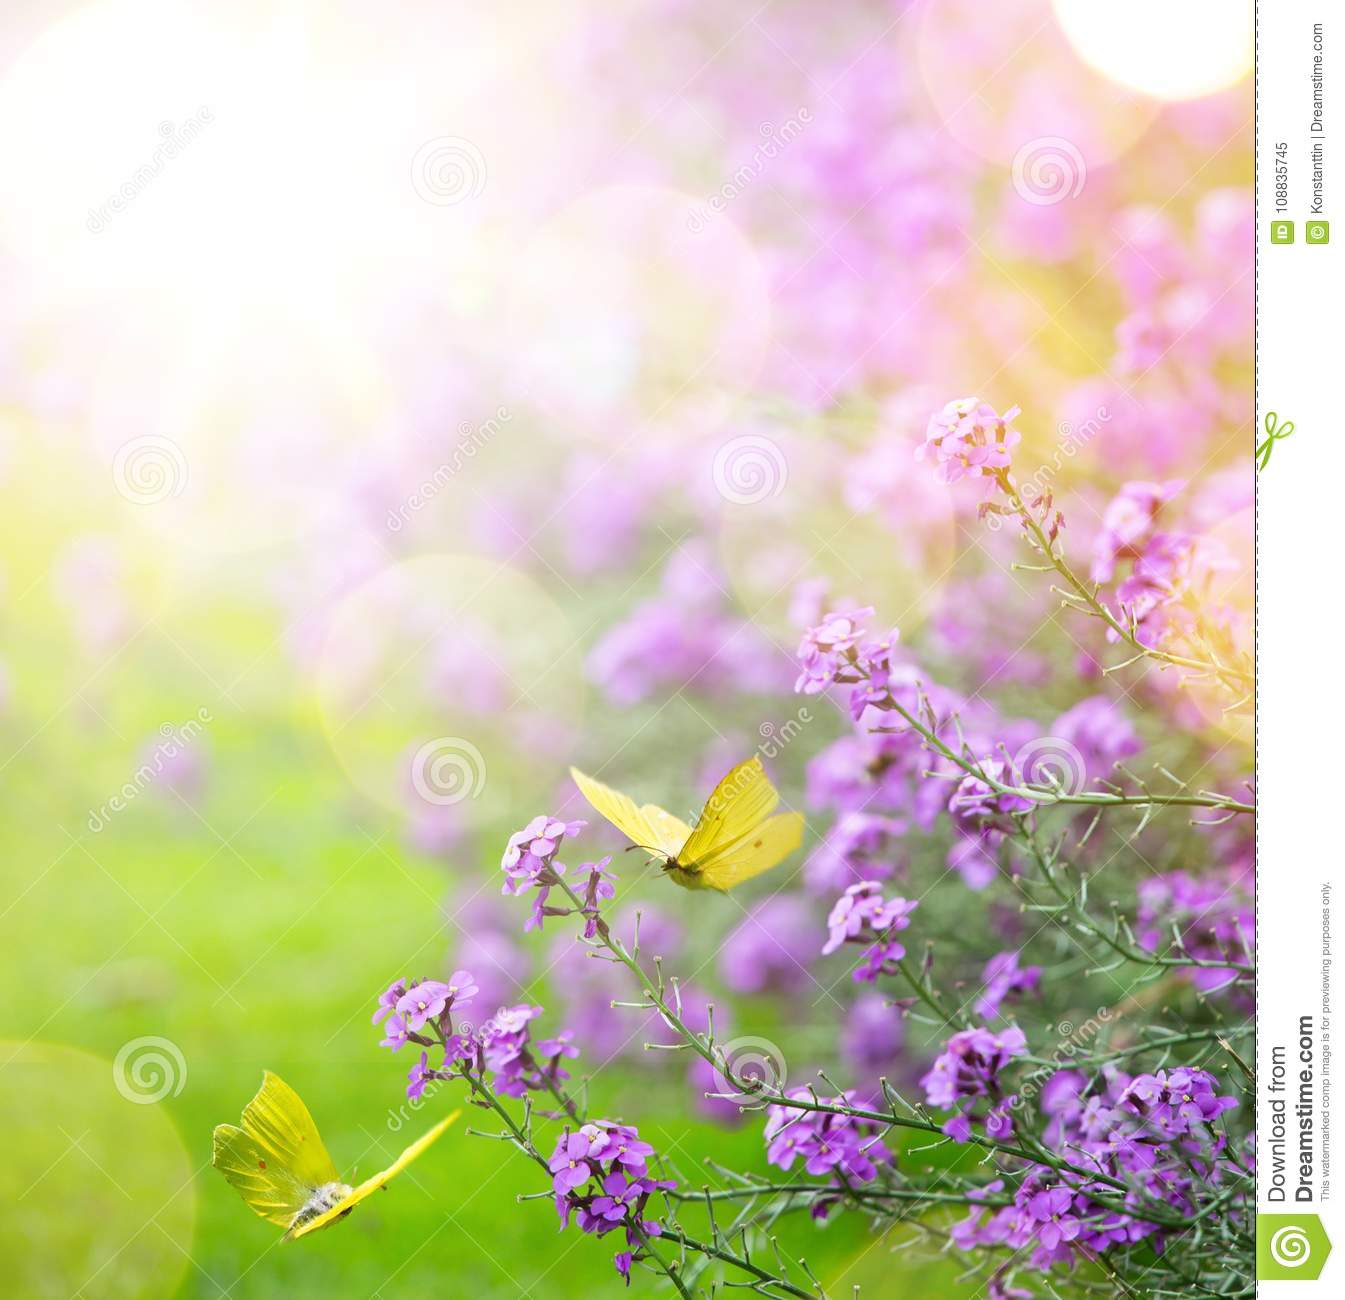 Art abstract spring background spring flower and butterfly stock download art abstract spring background spring flower and butterfly stock image image of spring mightylinksfo